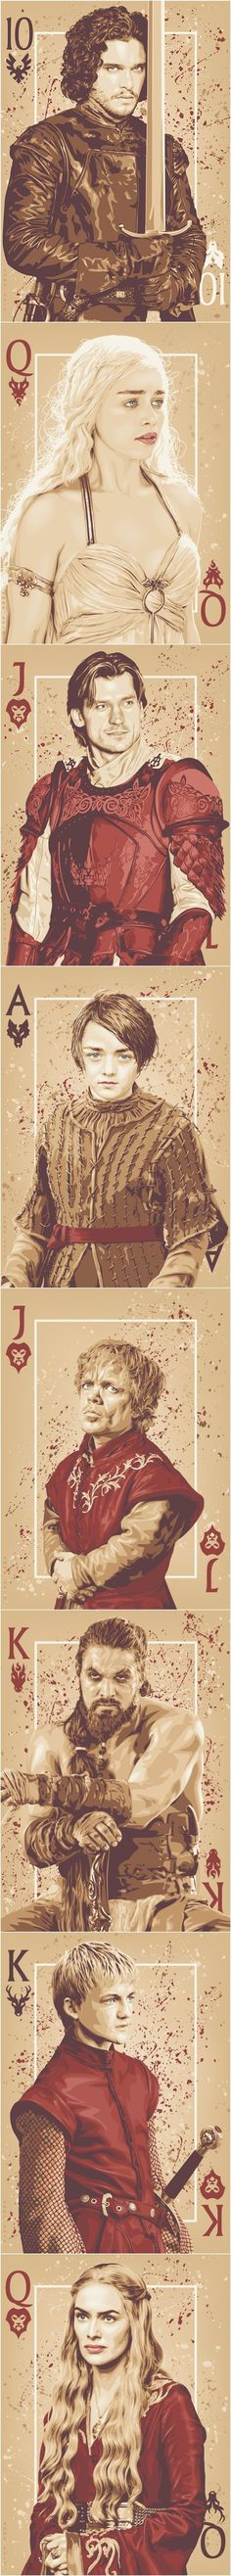 Cards Game Of Thrones By Ratscape